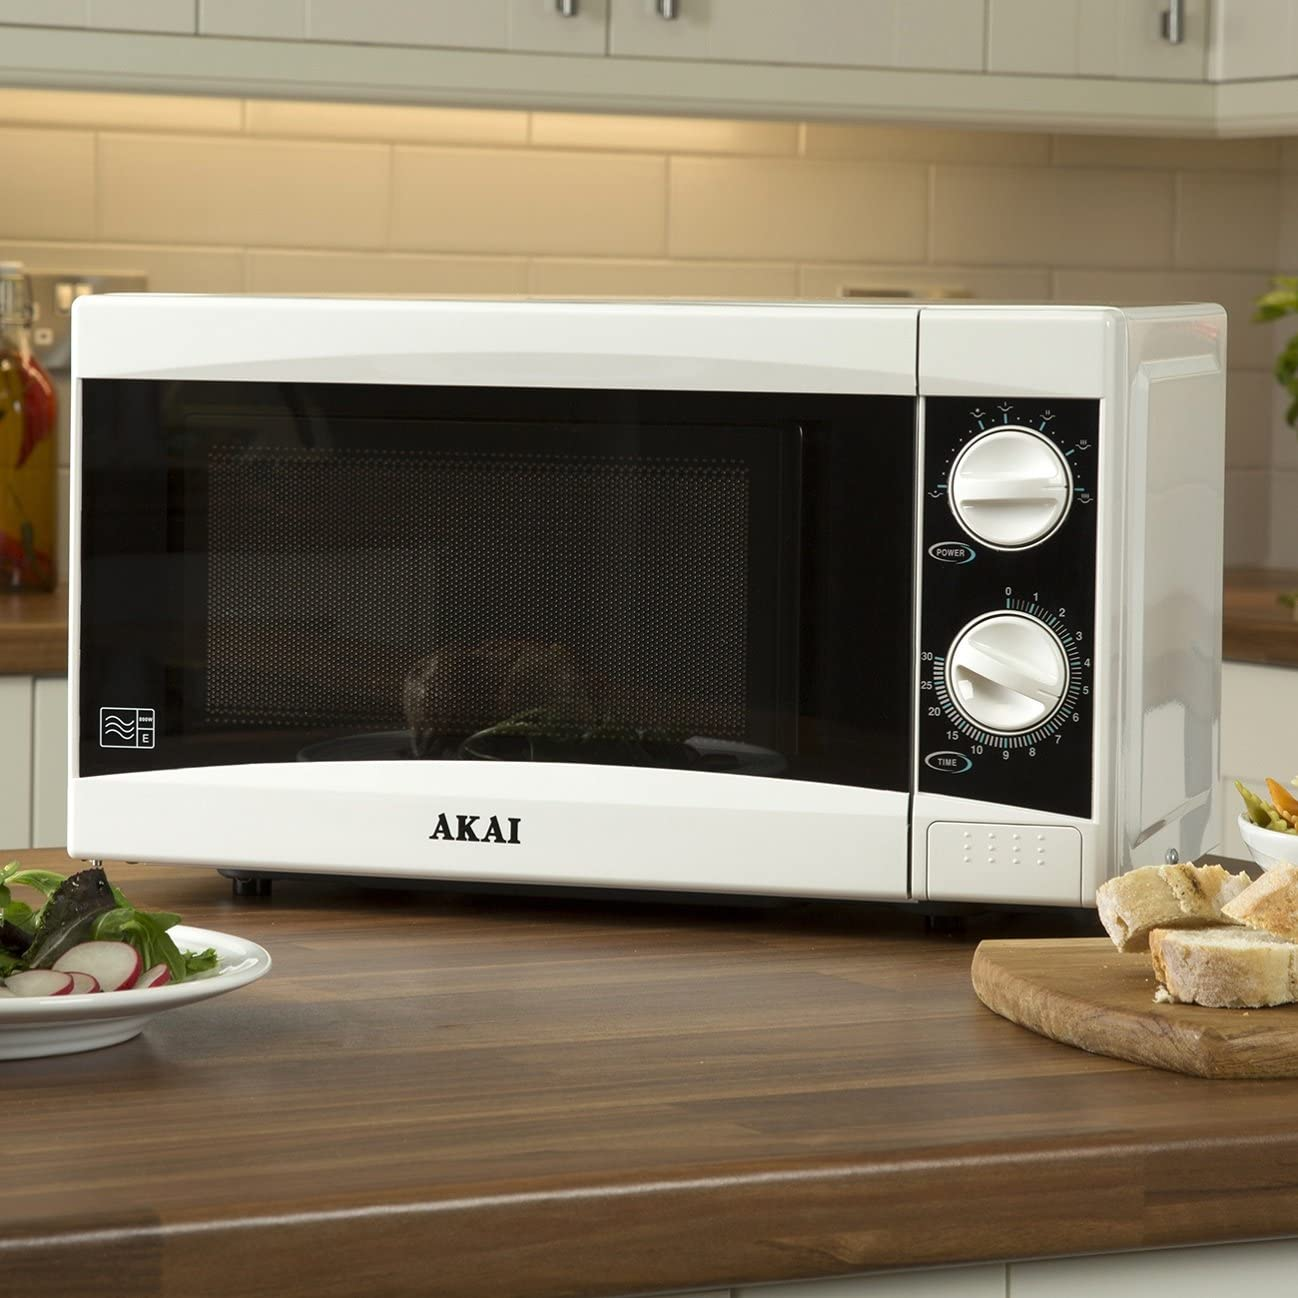 Black 800 W 20 Litre 30 Minute Timer Convenient Child-Lock Akai Manual Microwave with 6 Power Levels